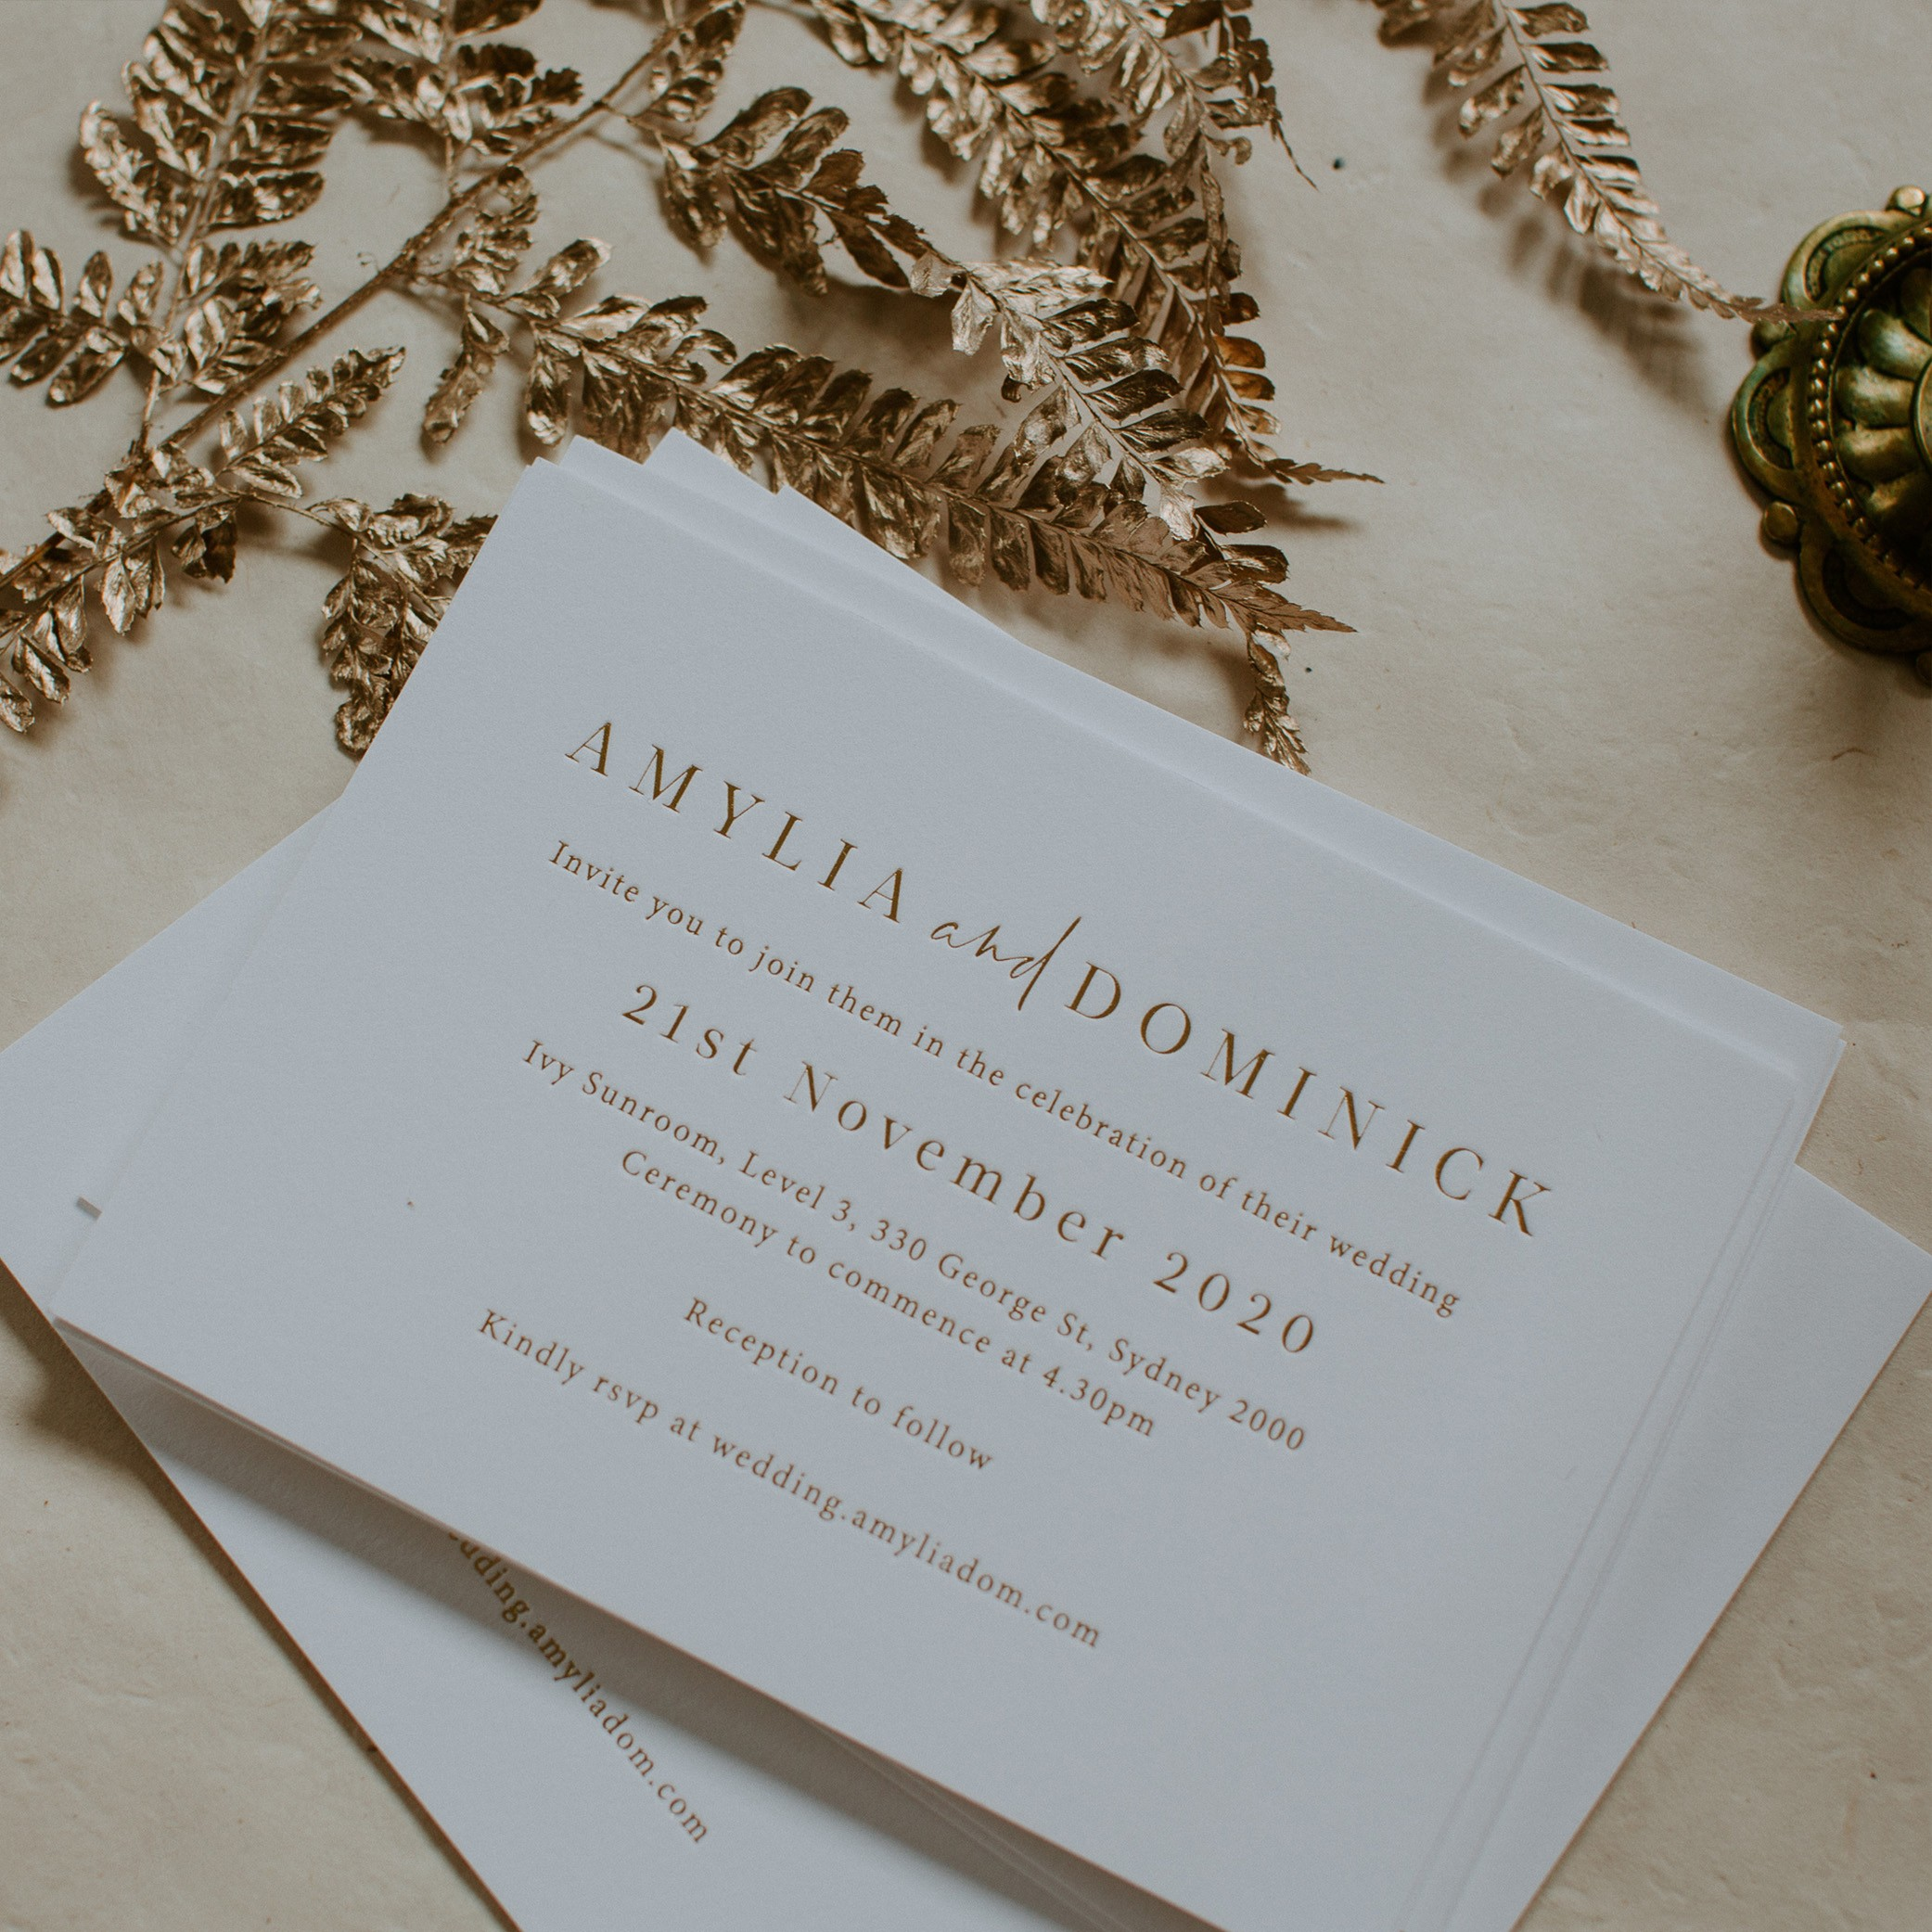 MAIN INVITATION | Amylia + Dom